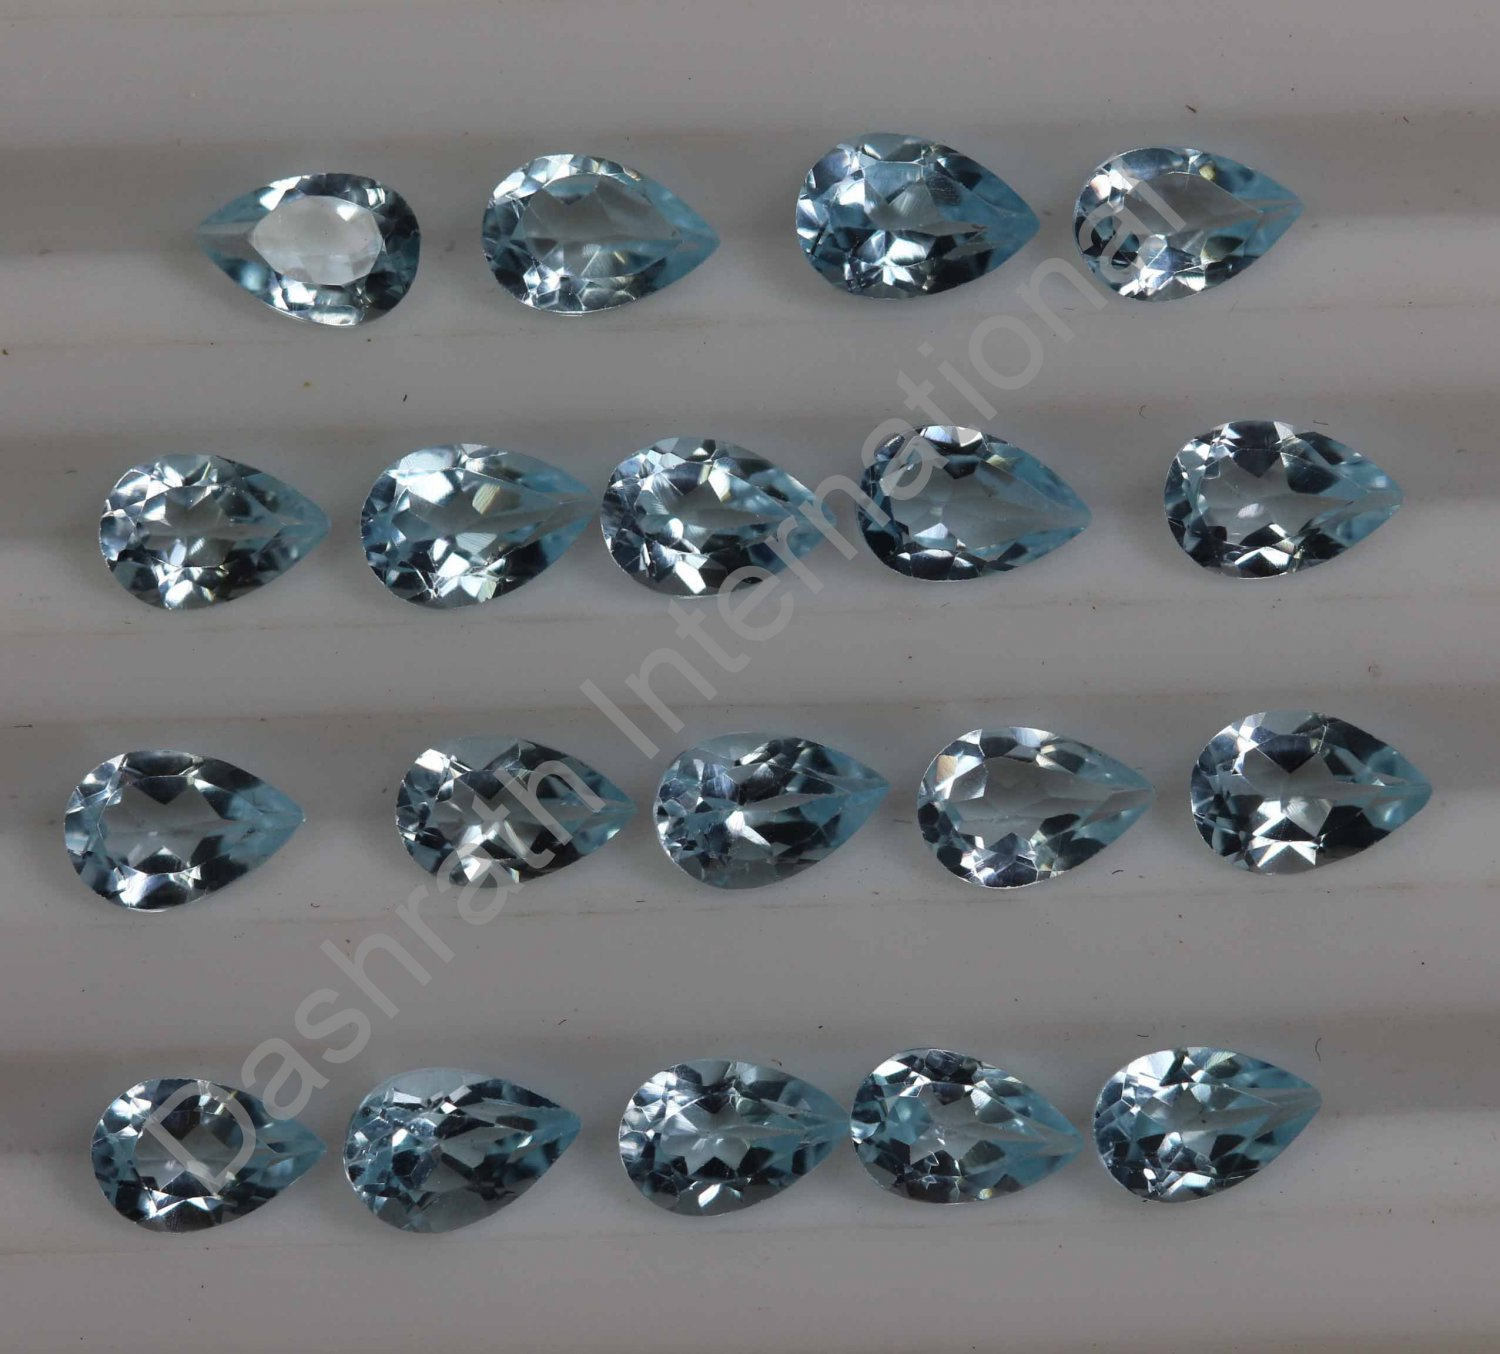 5x3mm  Natural Sky Blue Topaz Faceted Cut Pear 10 Pieces Lot  Top Quality Loose Gemstone